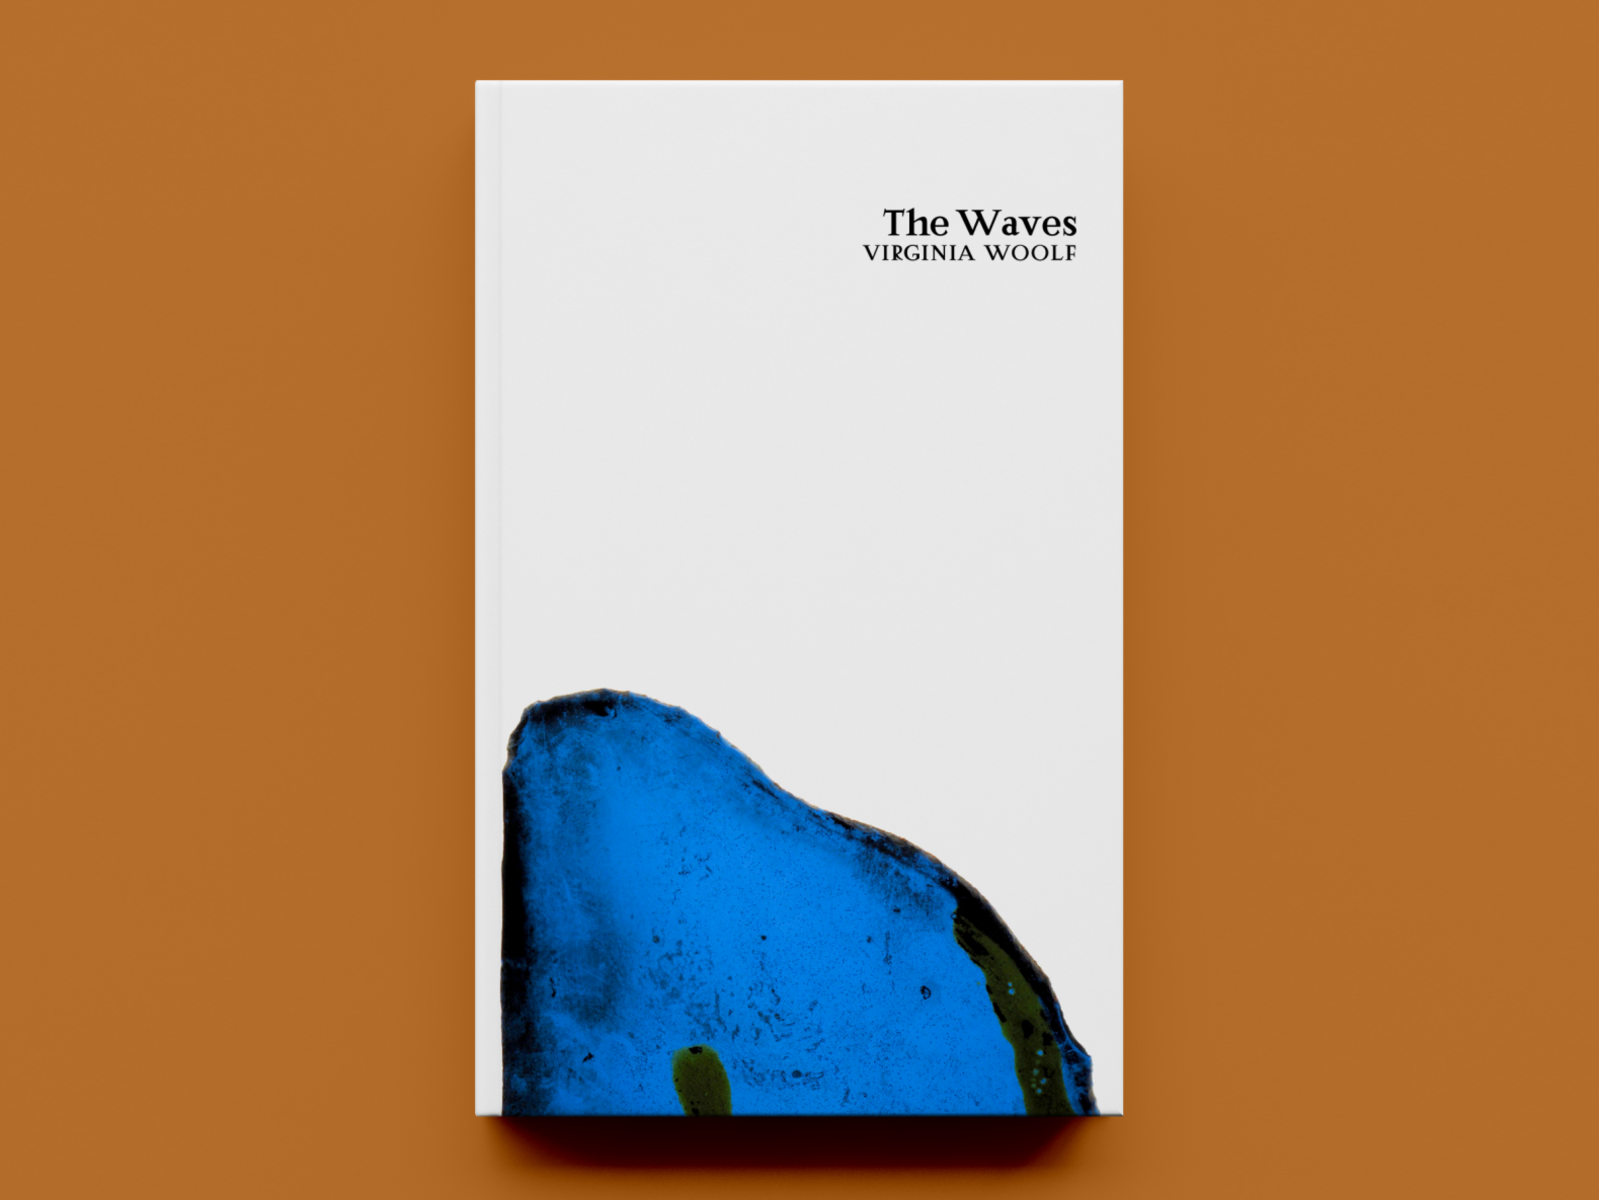 'The Waves' by Virginia Woolf – Cover Concept by AGILITY